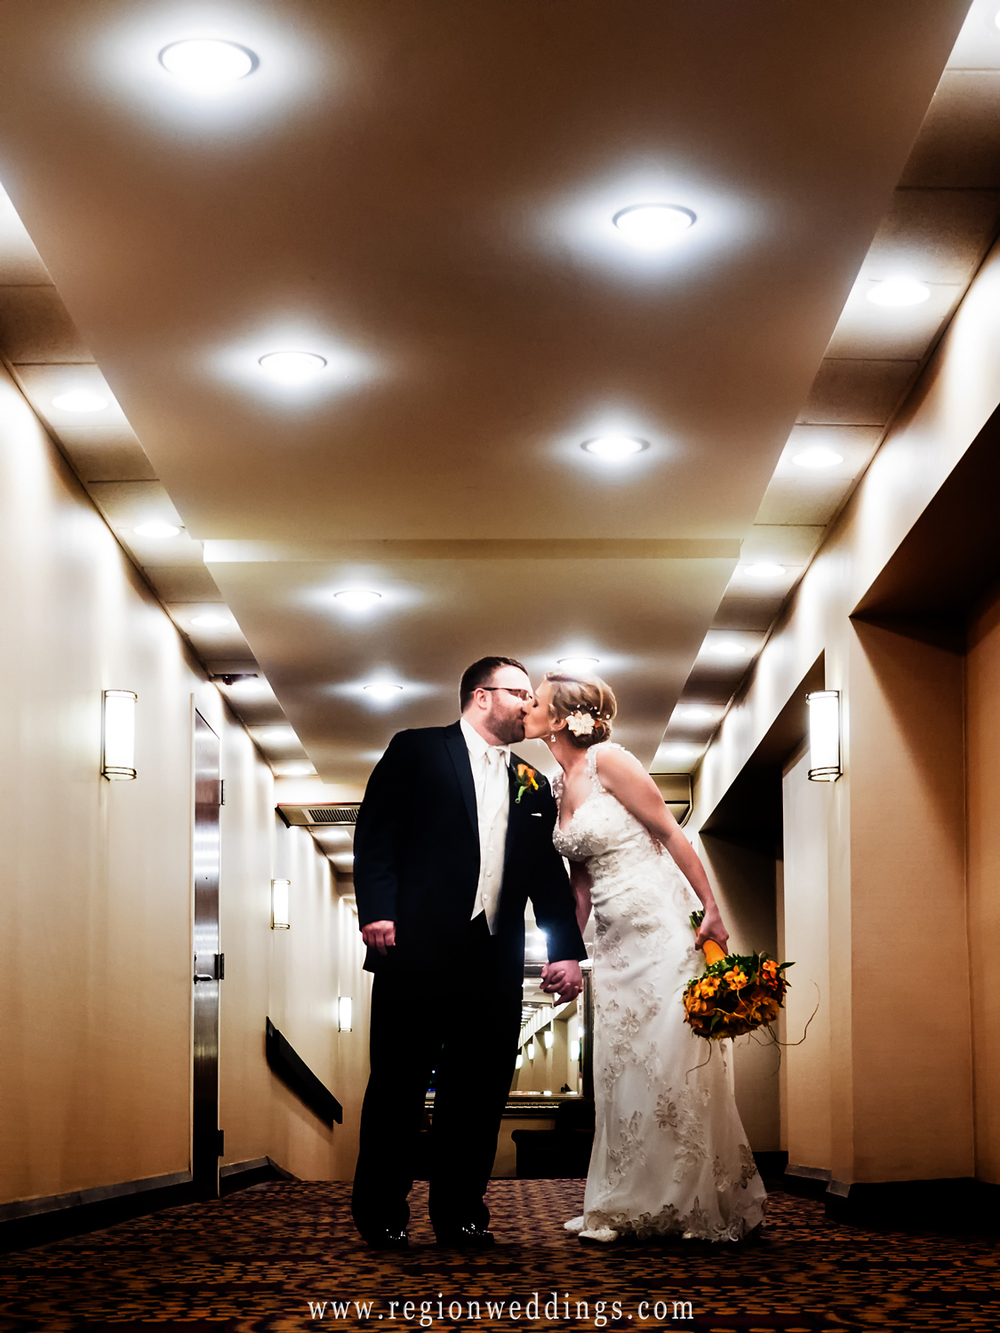 The bride and groom kiss in the hallway at Radisson Hotel.